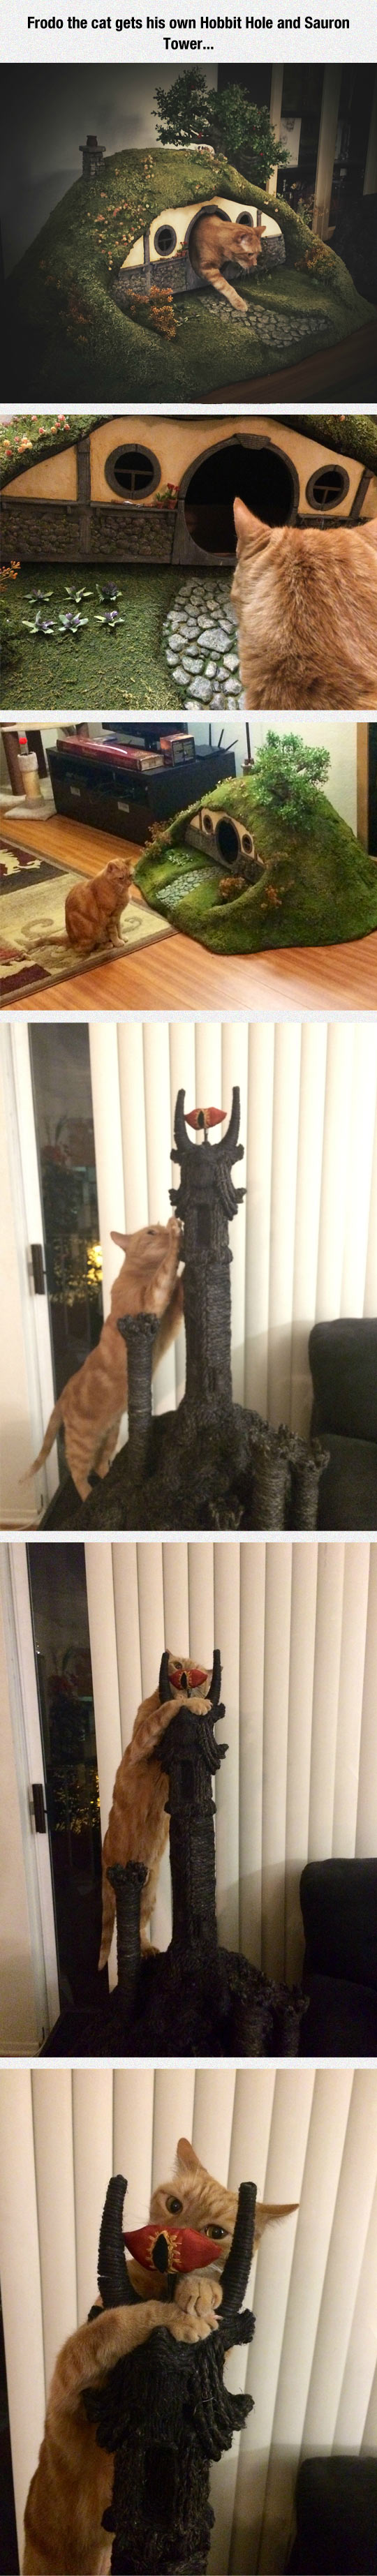 funny-Hobbit-hole-Sauron-tower-cat